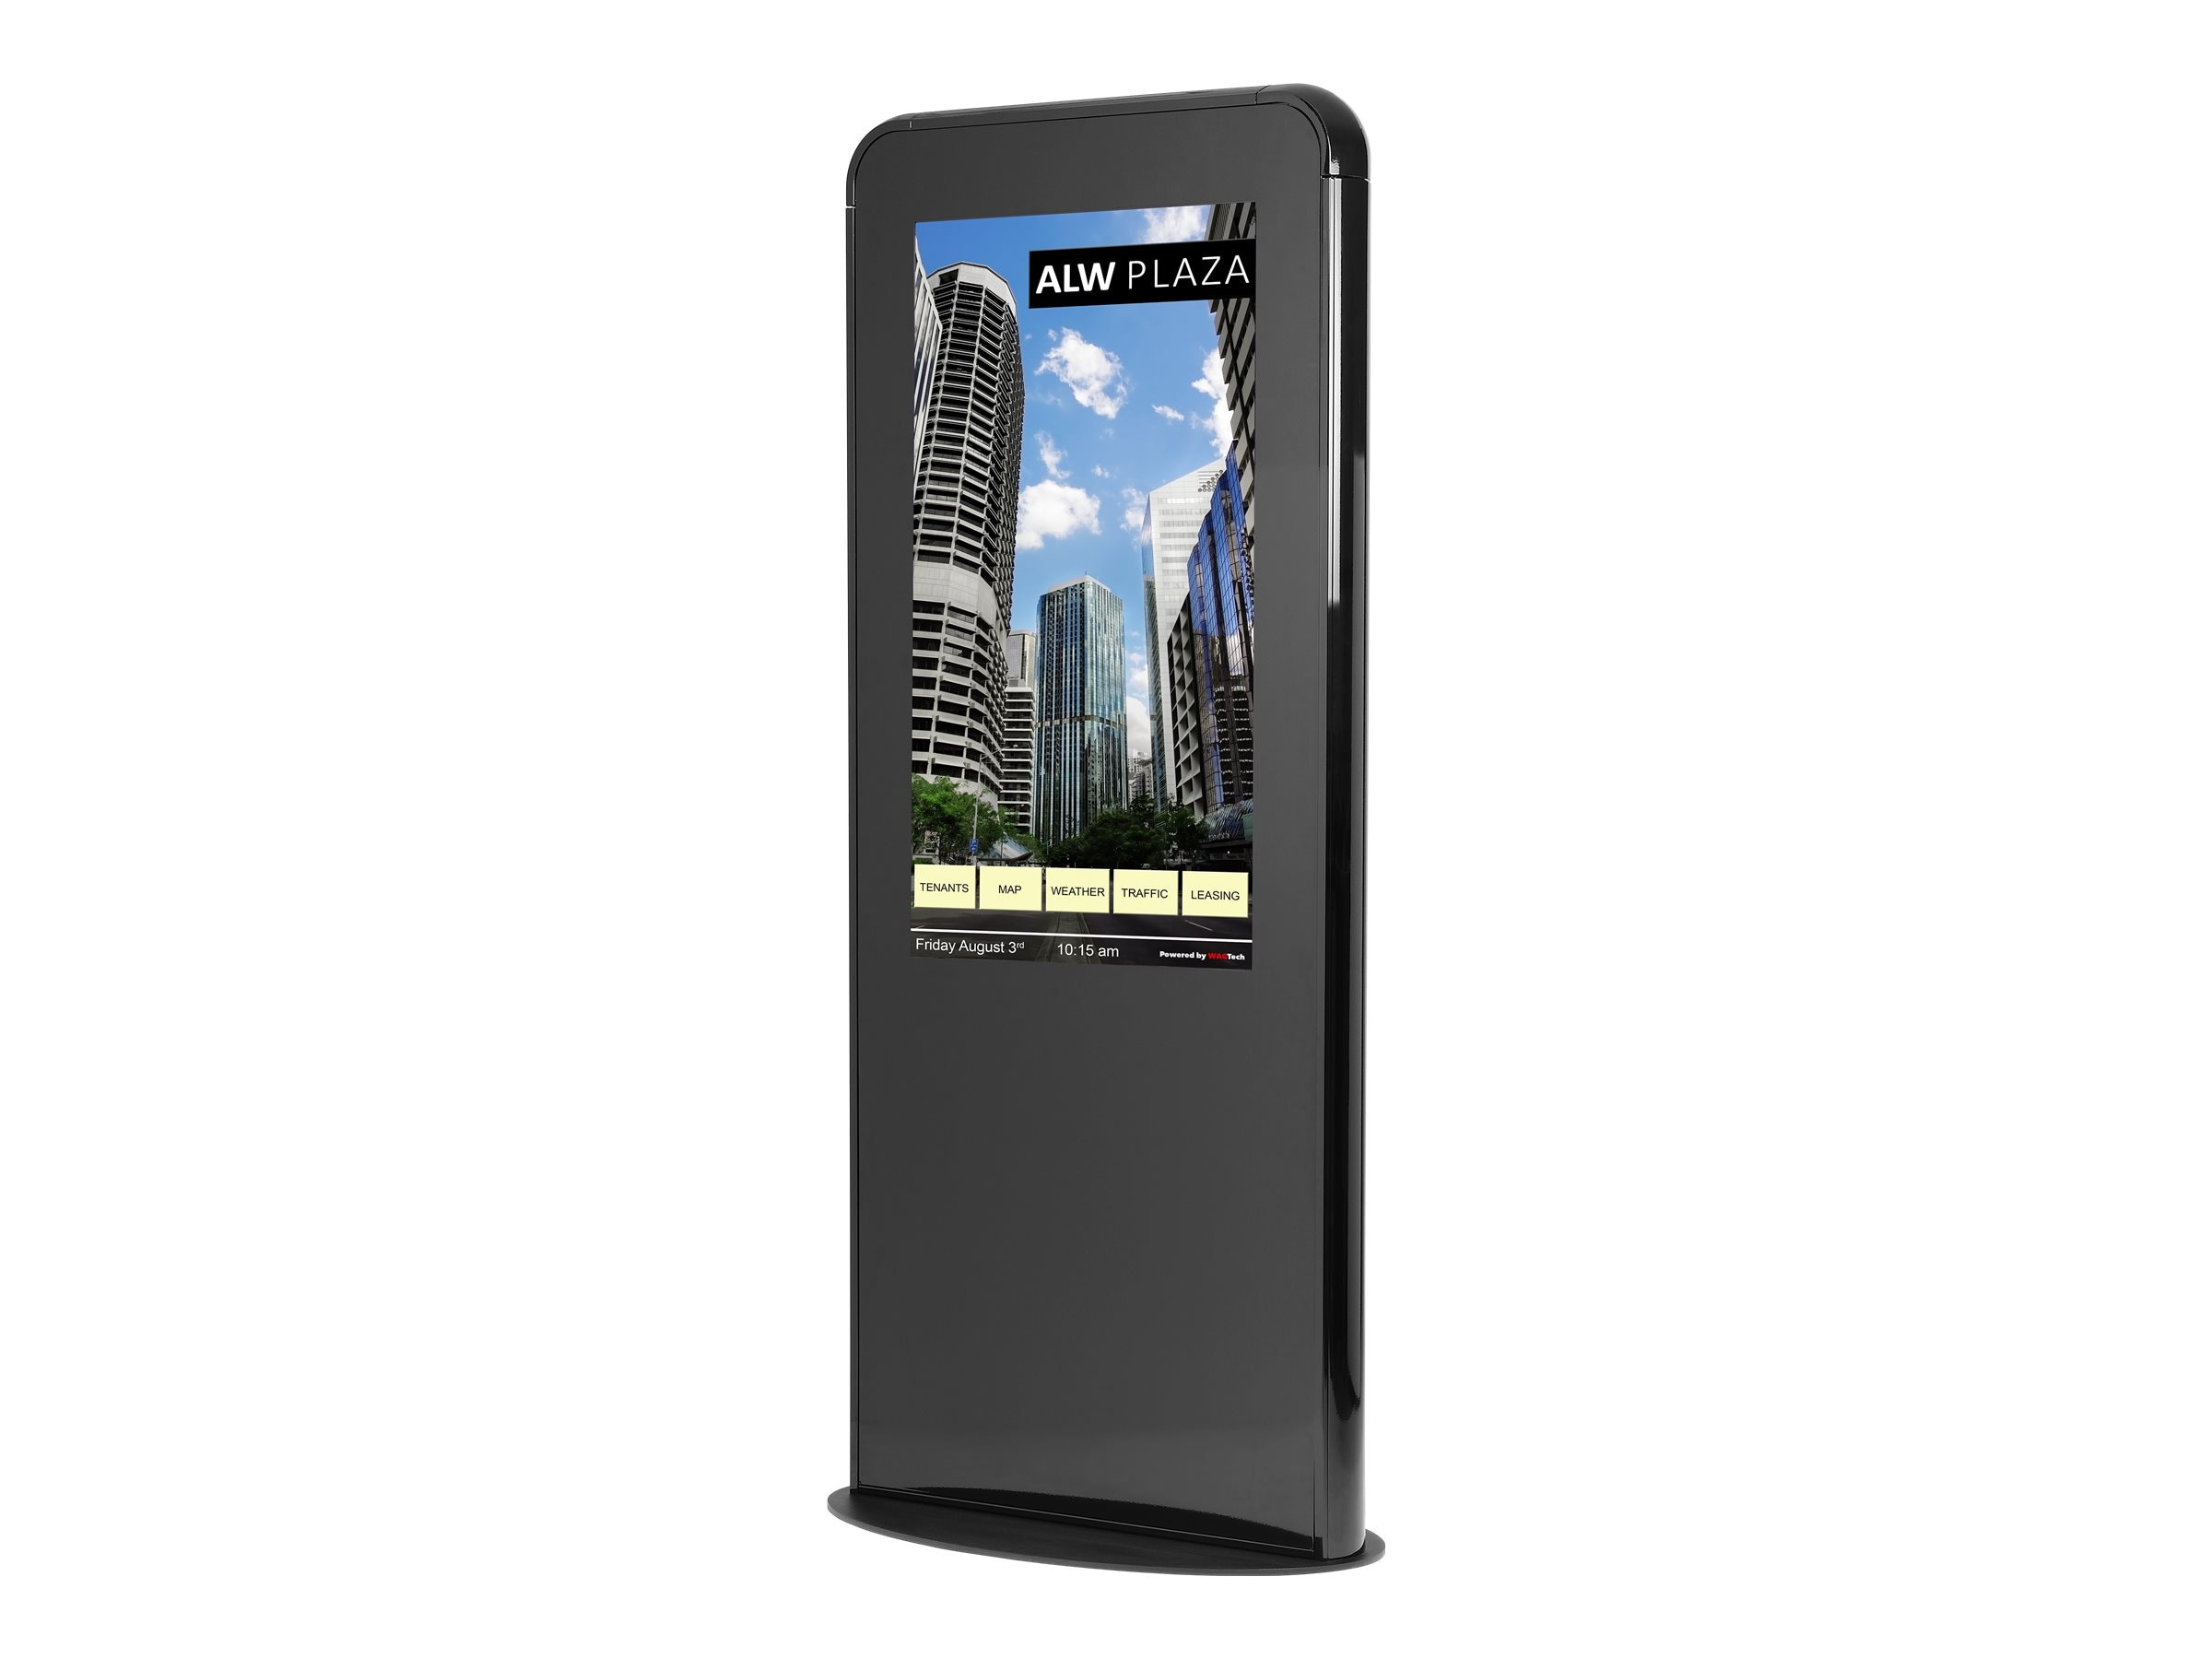 NEC 46 Full HD LED-LCD Touchscreen Portait Kiosk, Silver, NEC-KIOSK-PORT-S